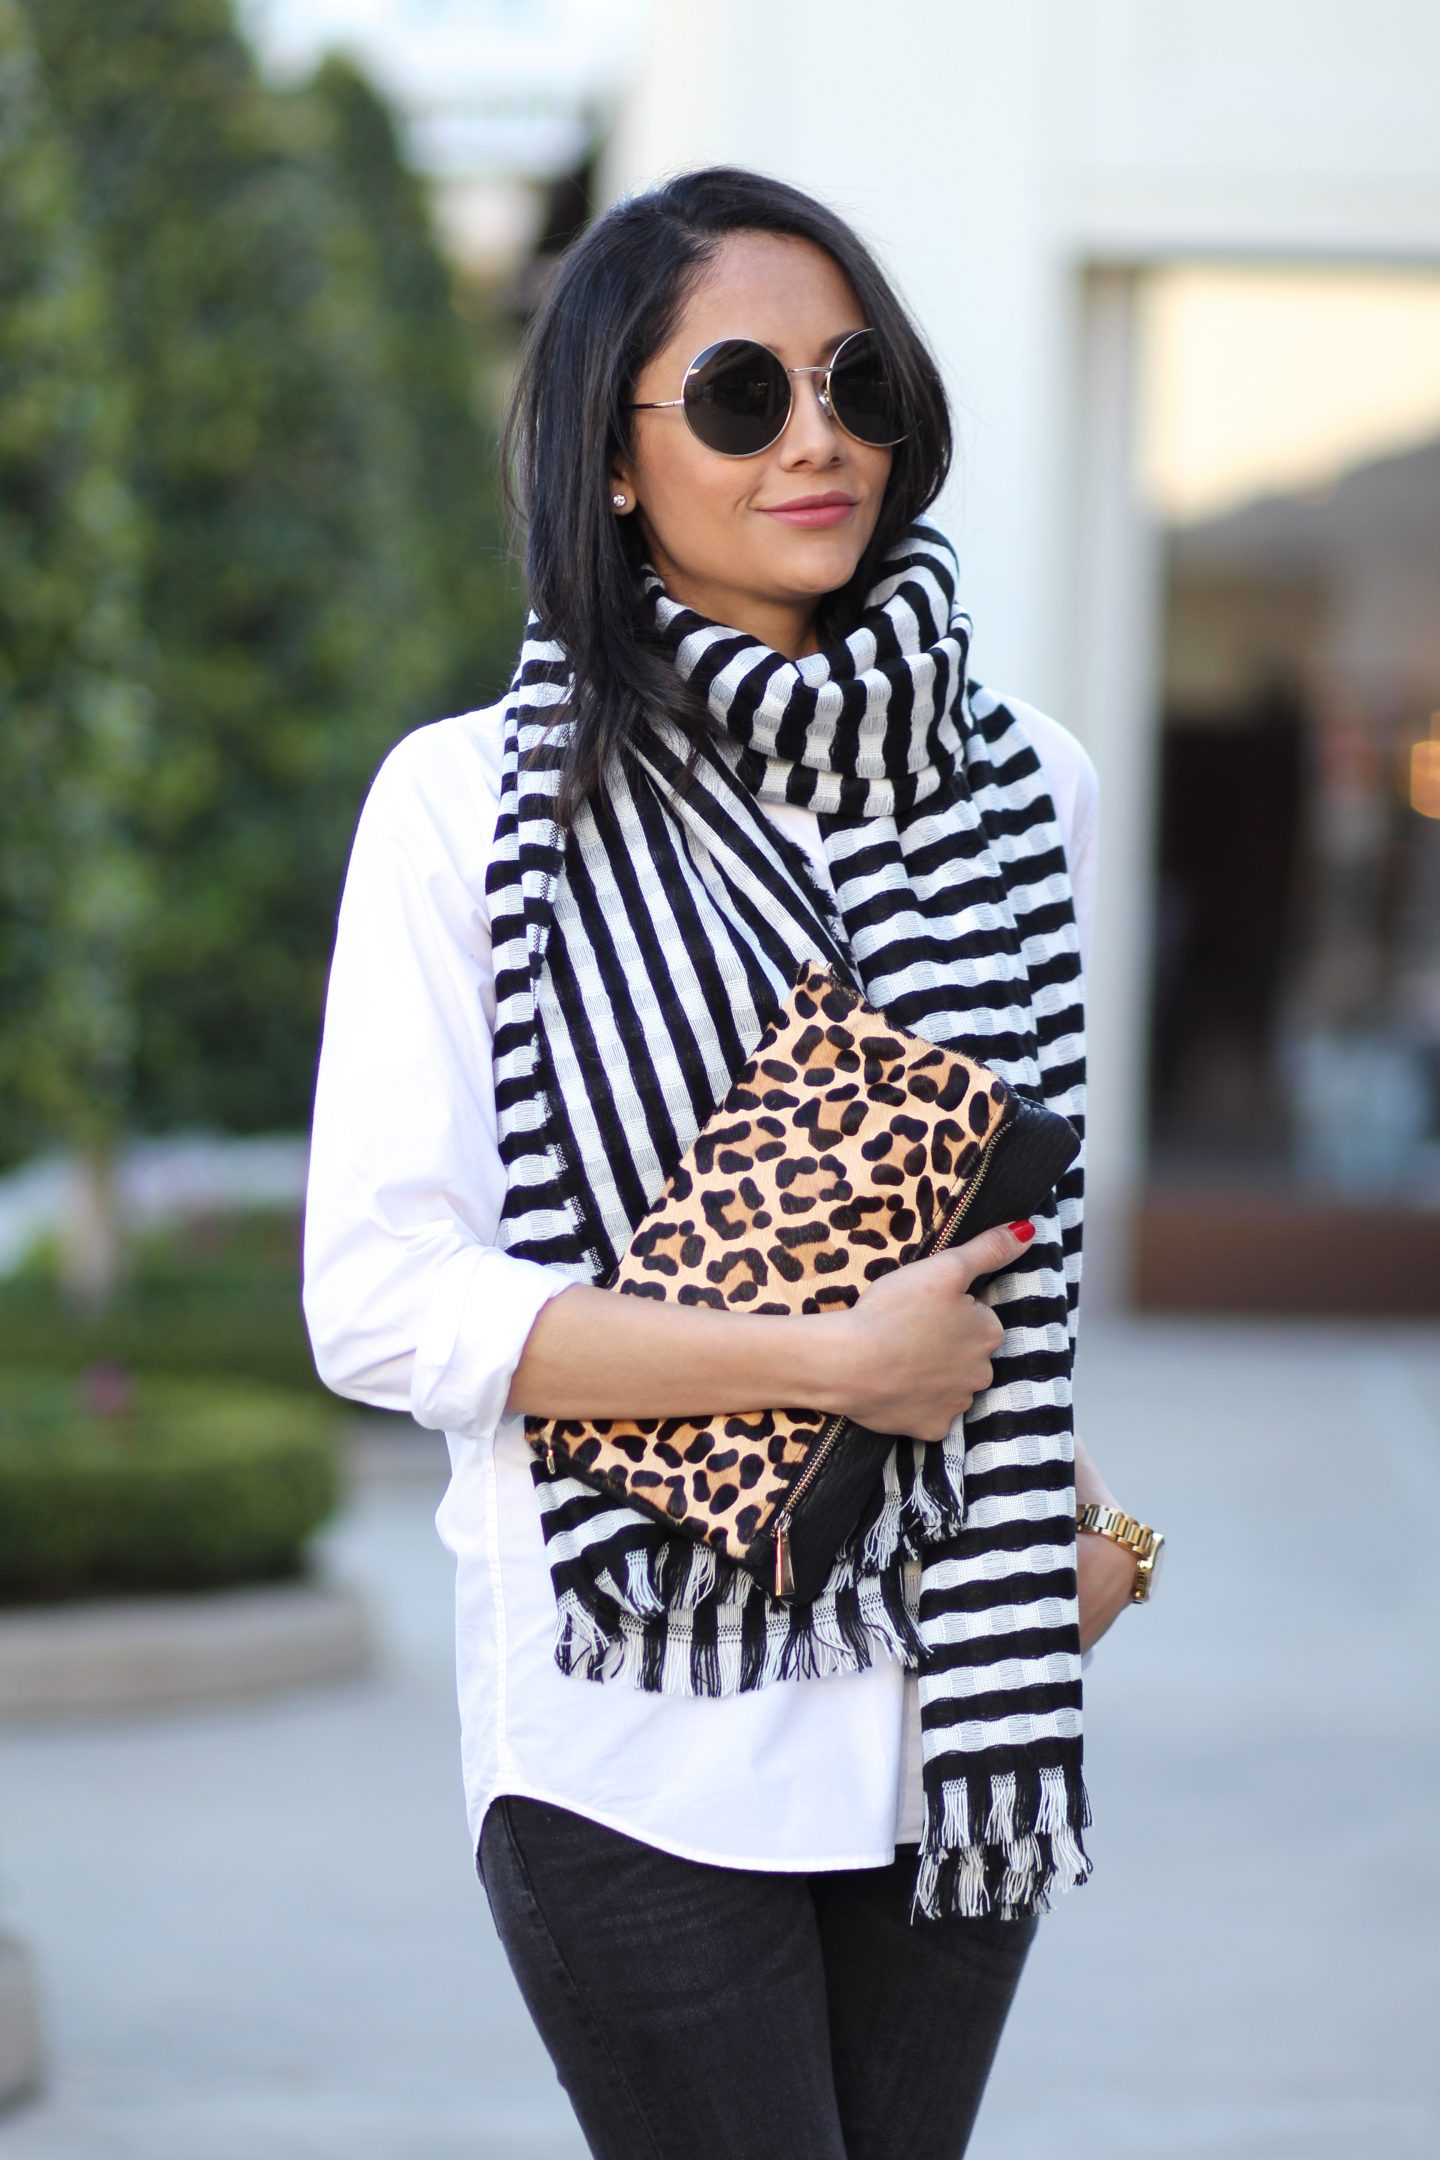 Lifestyle blogger Lilly Beltran wearing a striped scarf and leopard clutch